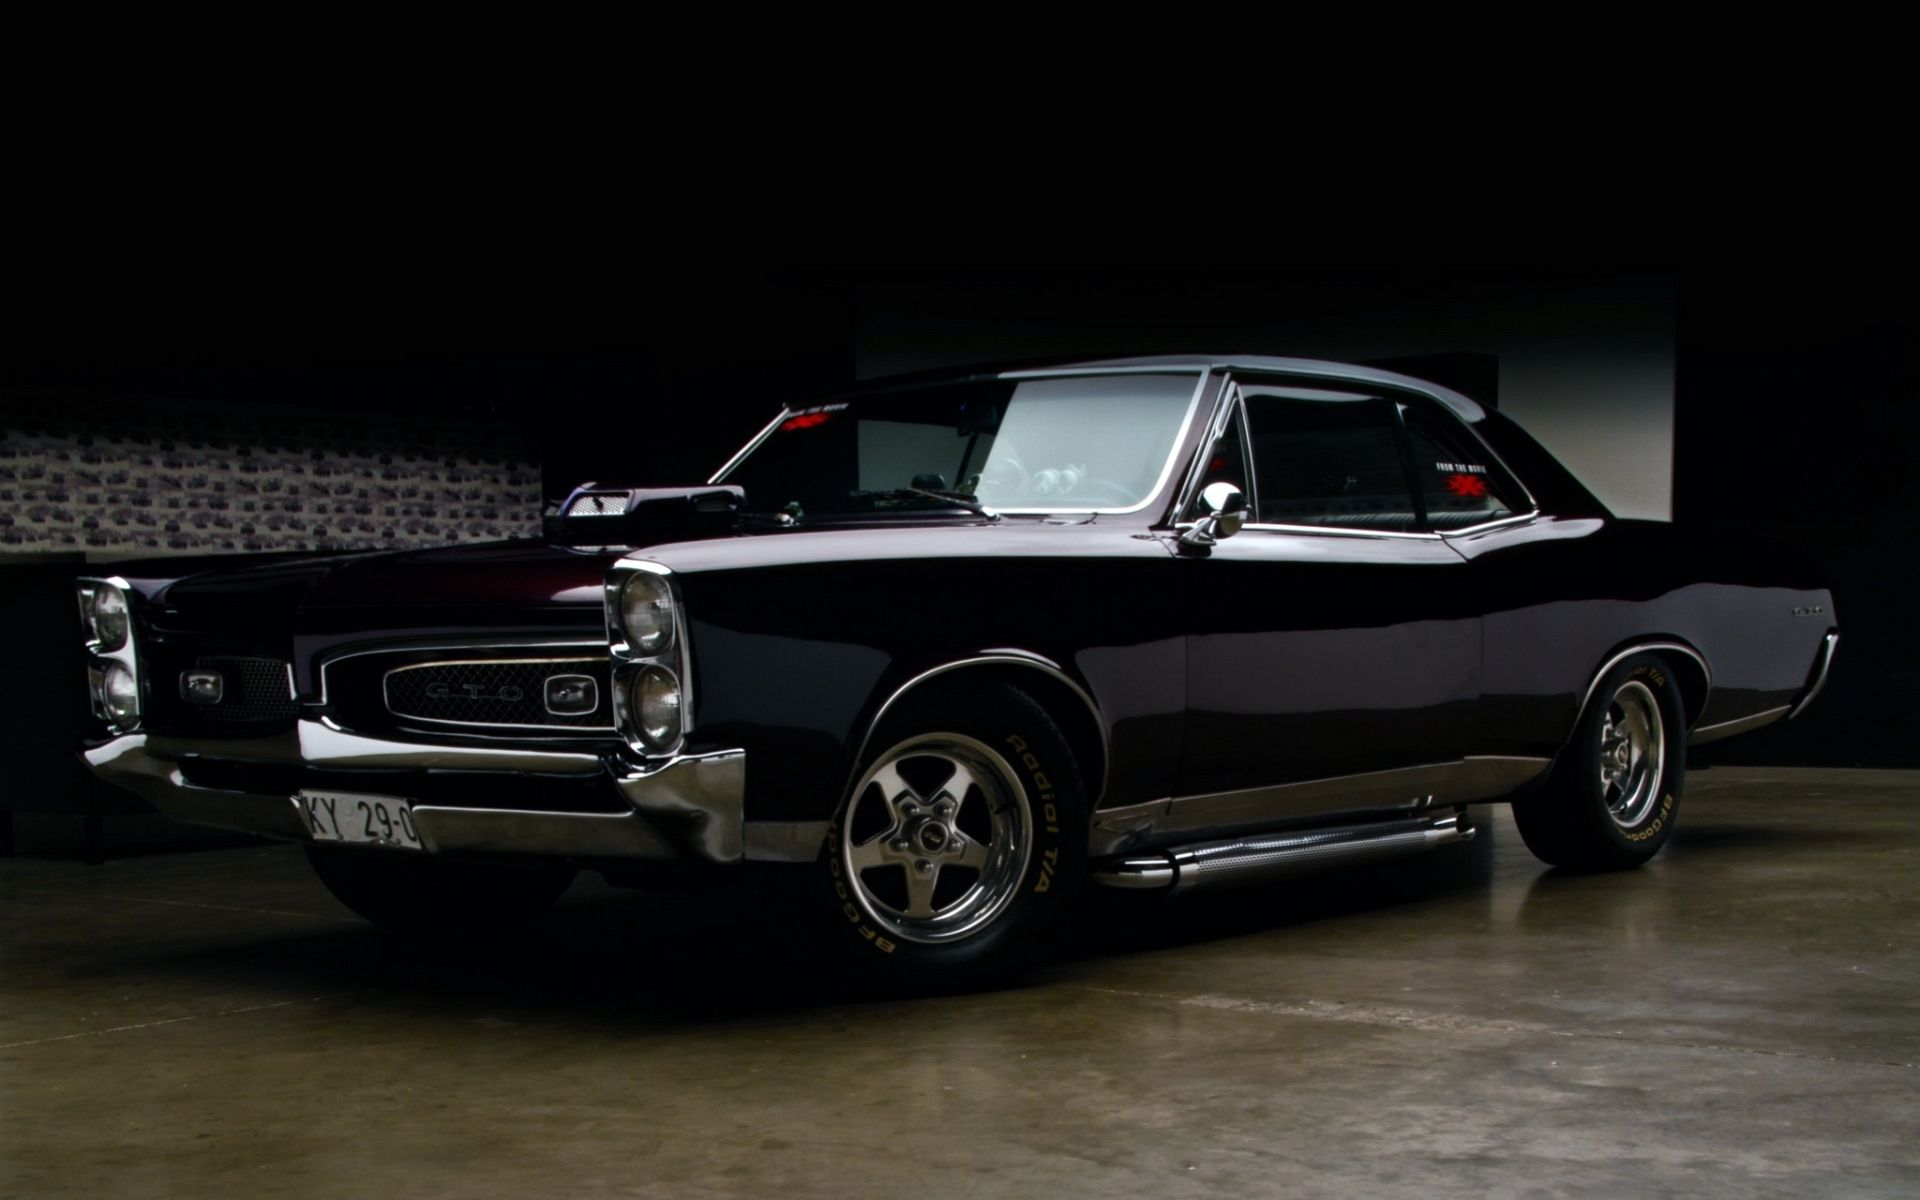 Pontiac Tempest GTO muscle cars hot rod wallpaper background | Bry ...